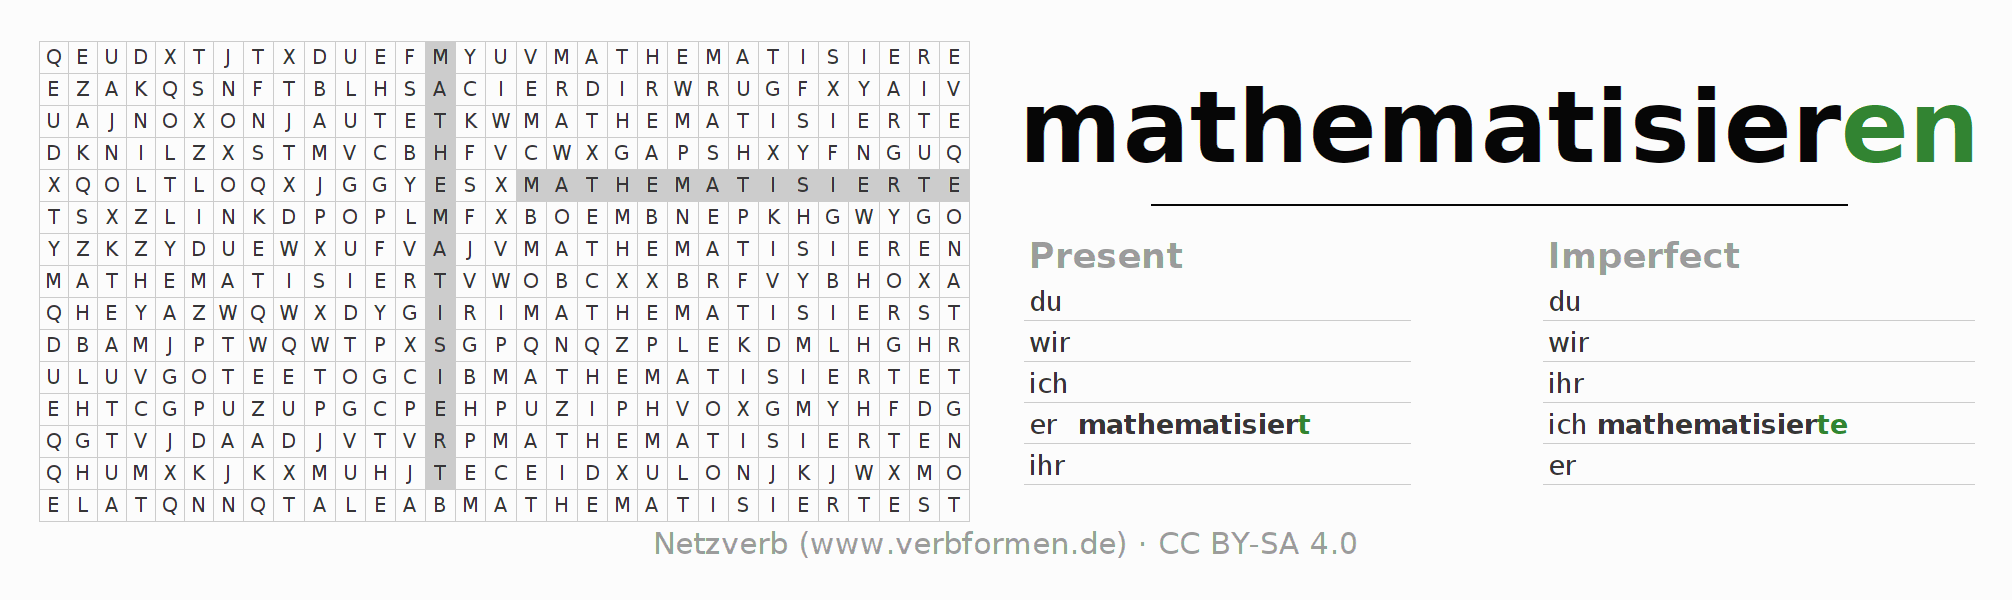 Word search puzzle for the conjugation of the verb mathematisieren